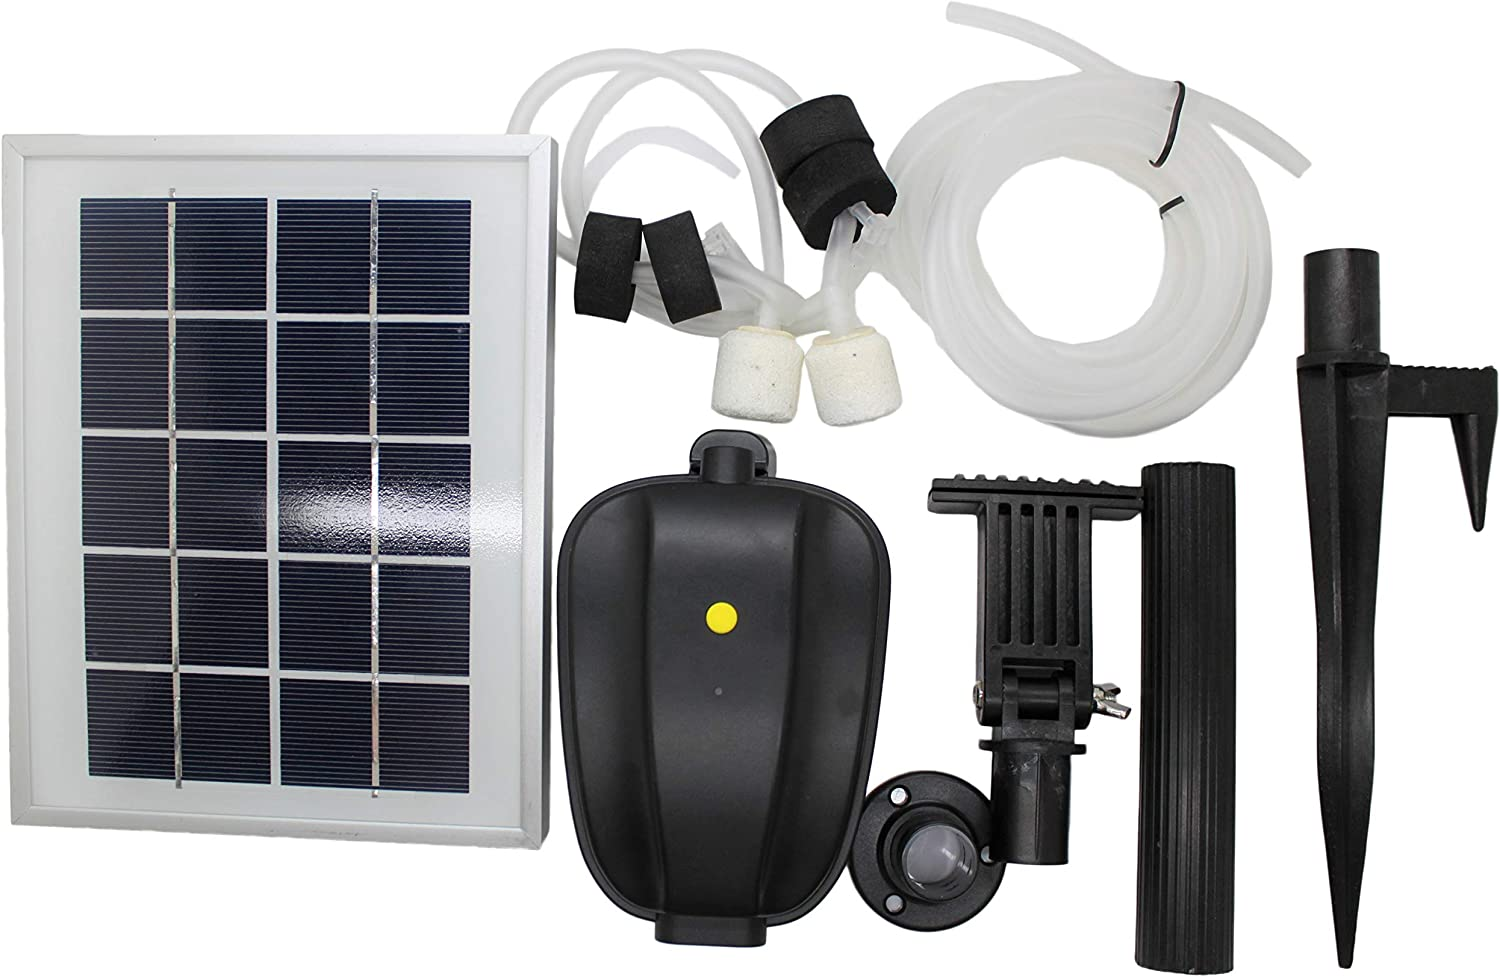 ASC 2.5W Solar Water Pond Oxygenator Kit With Battery Backup and Winter Mode